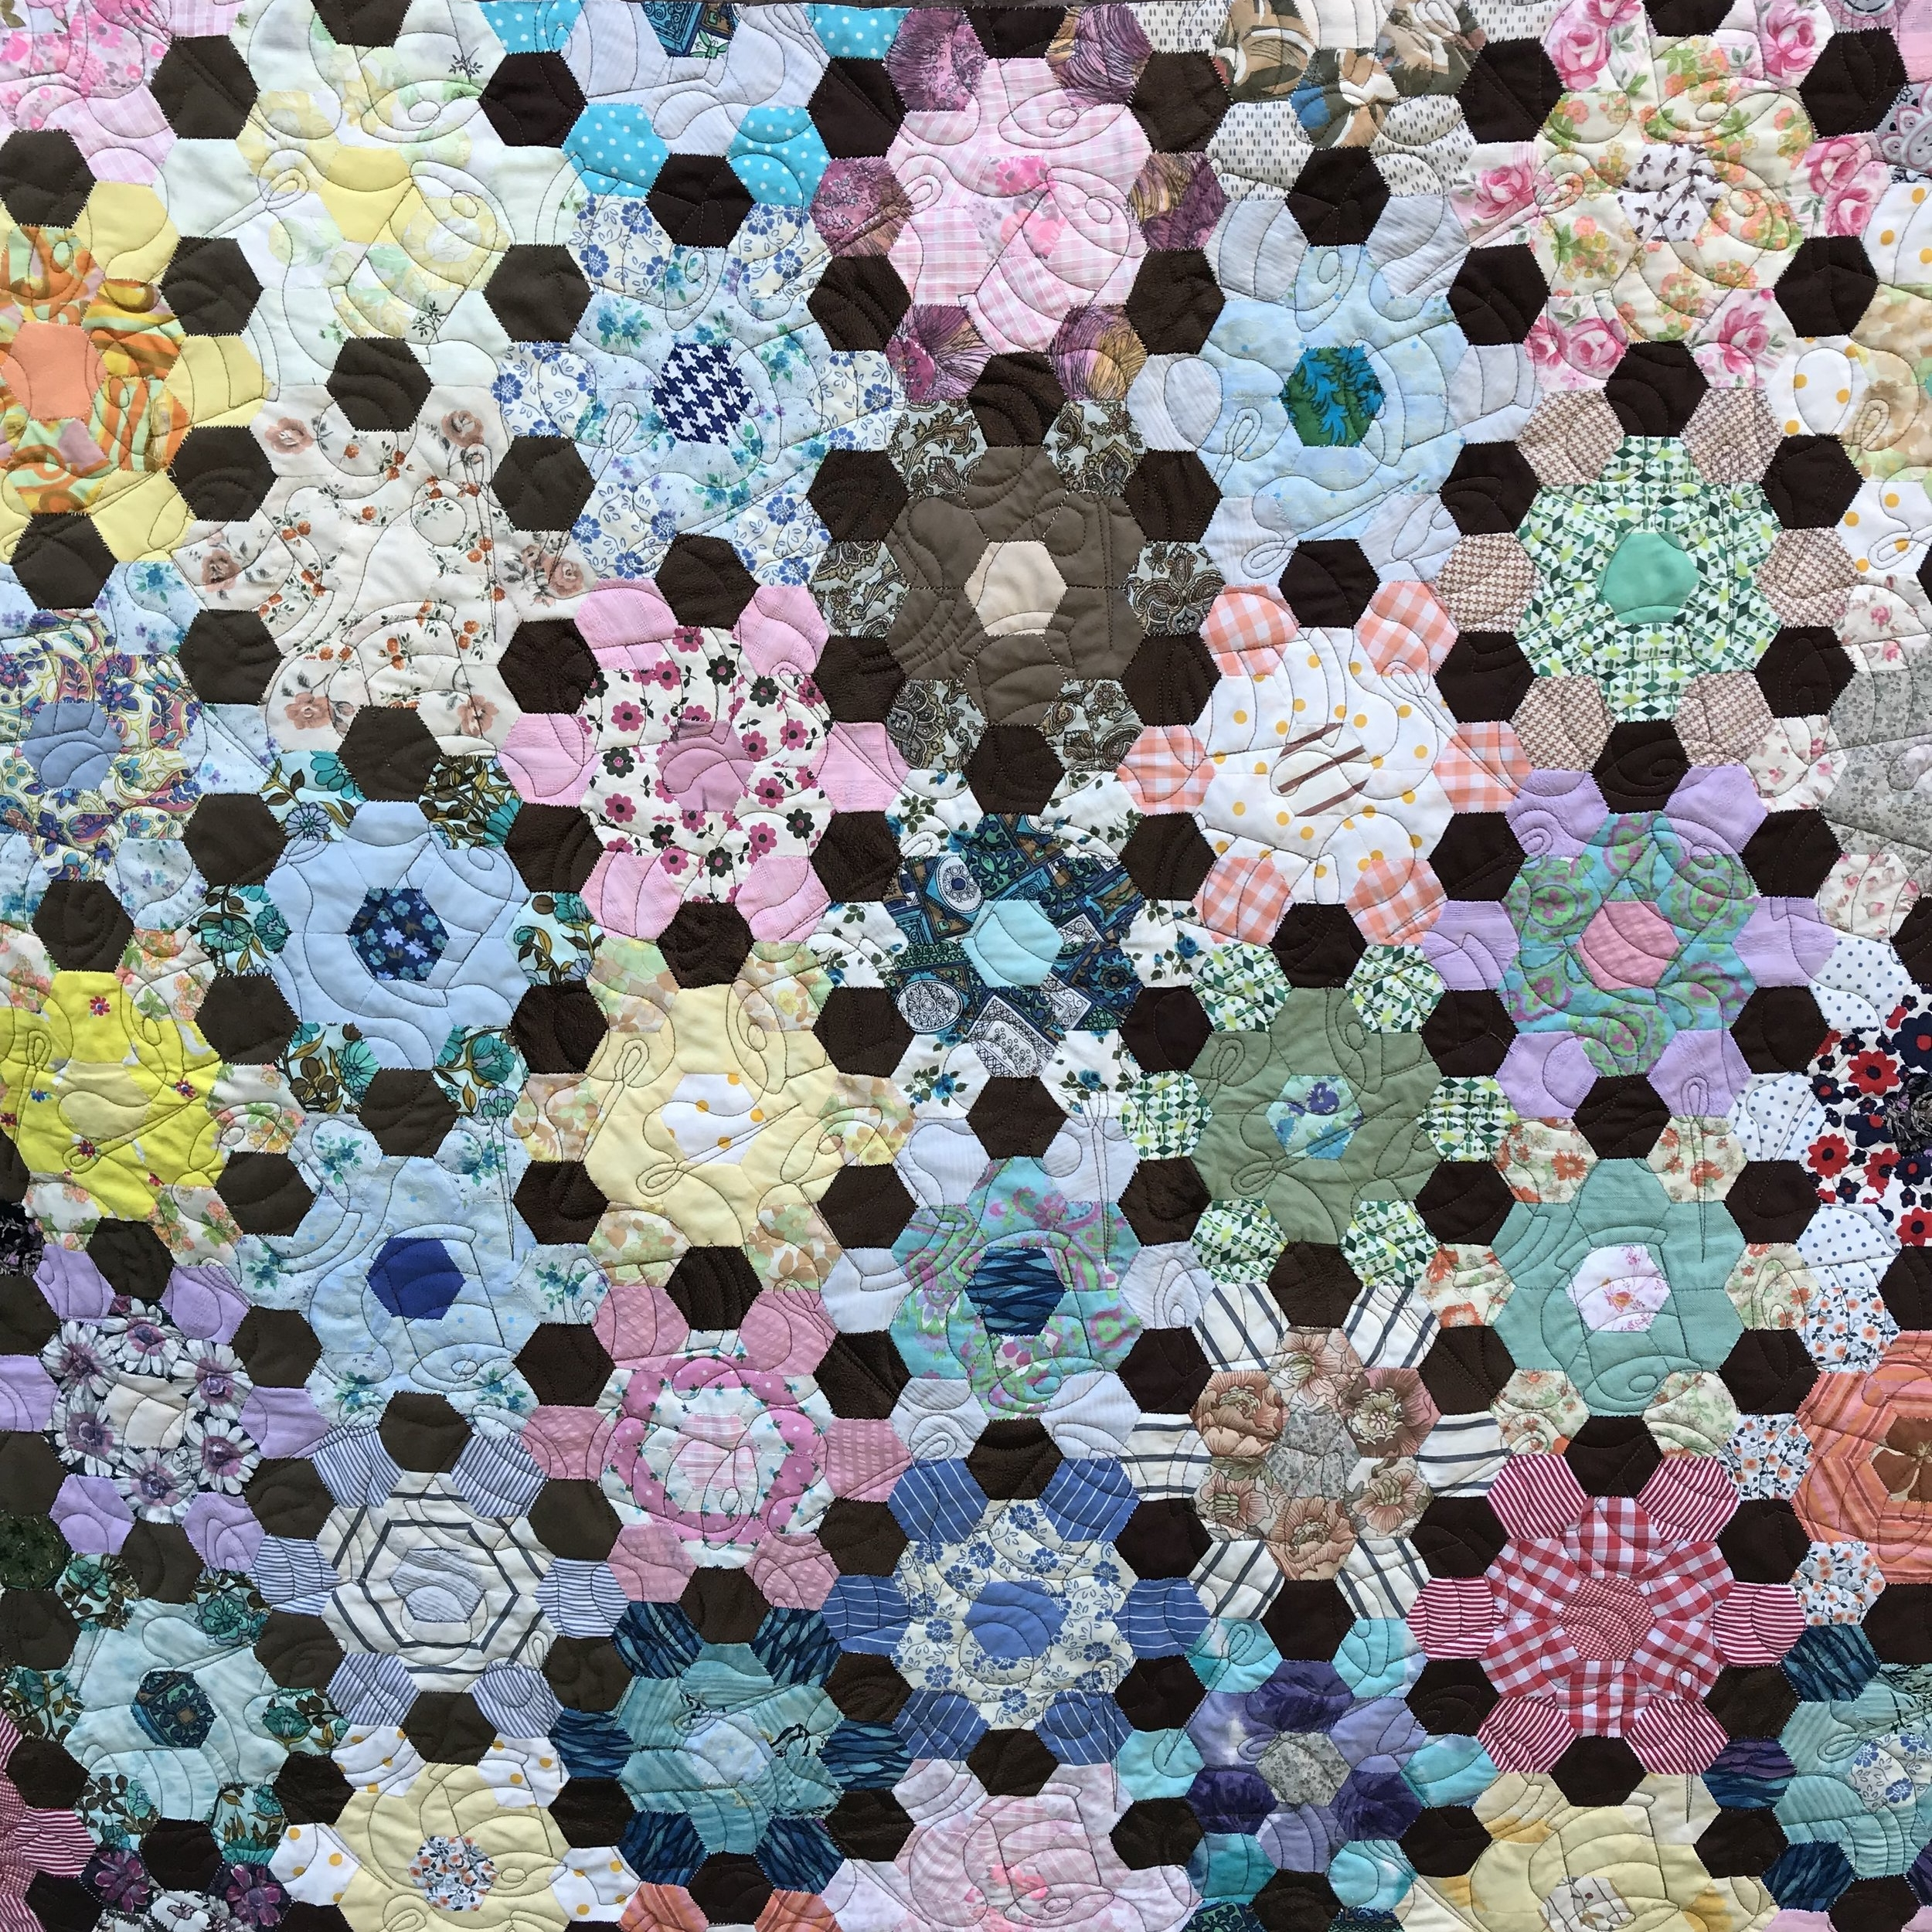 Andee's Mum's Quilt is quilted with needles and threads.